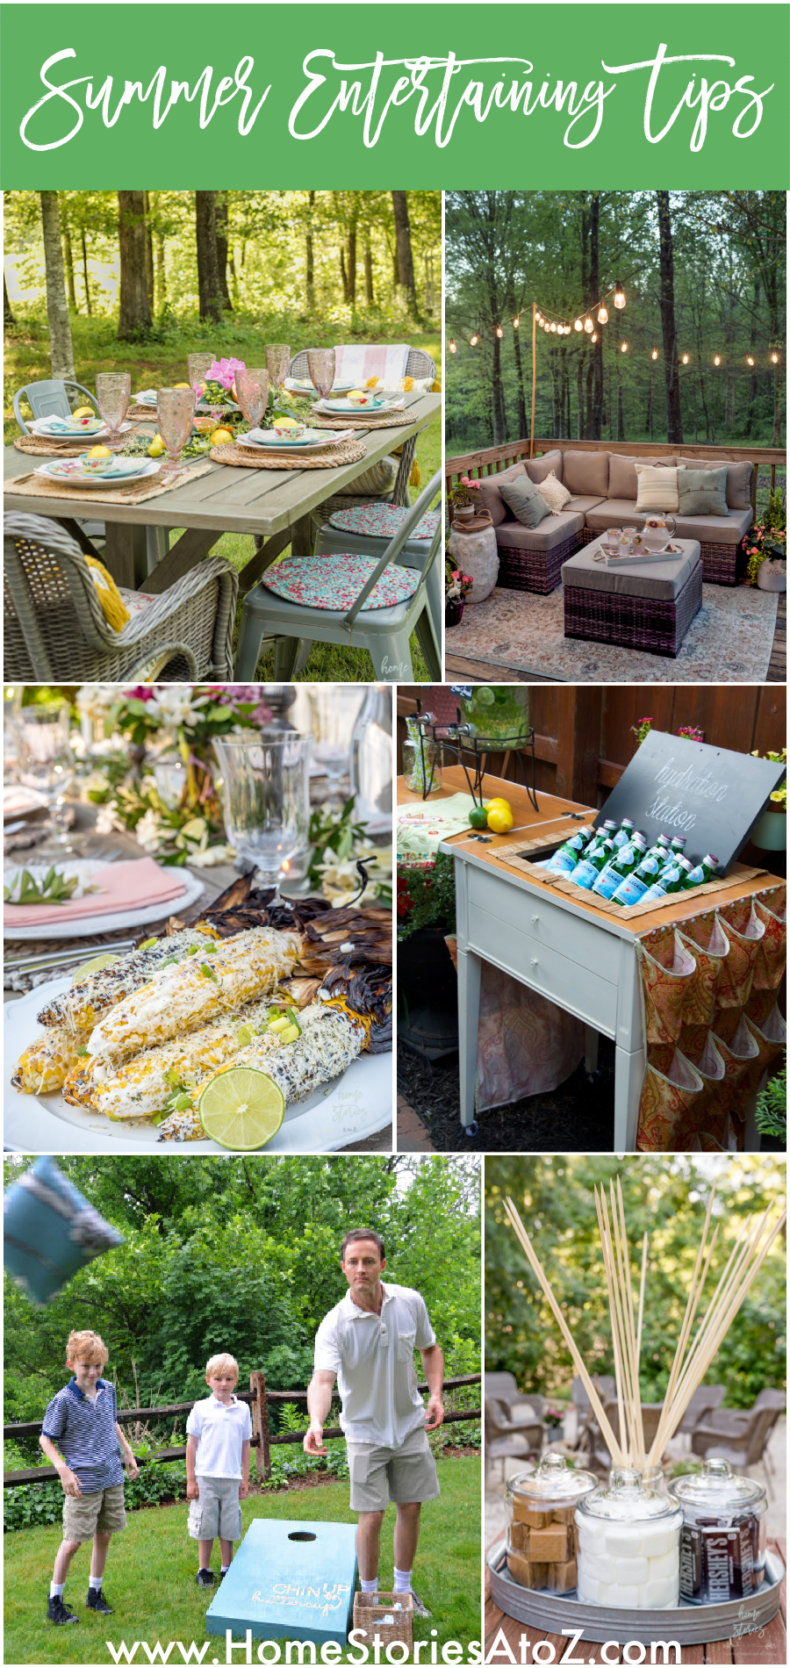 Summer Entertaining Tips - Home Stories A to Z